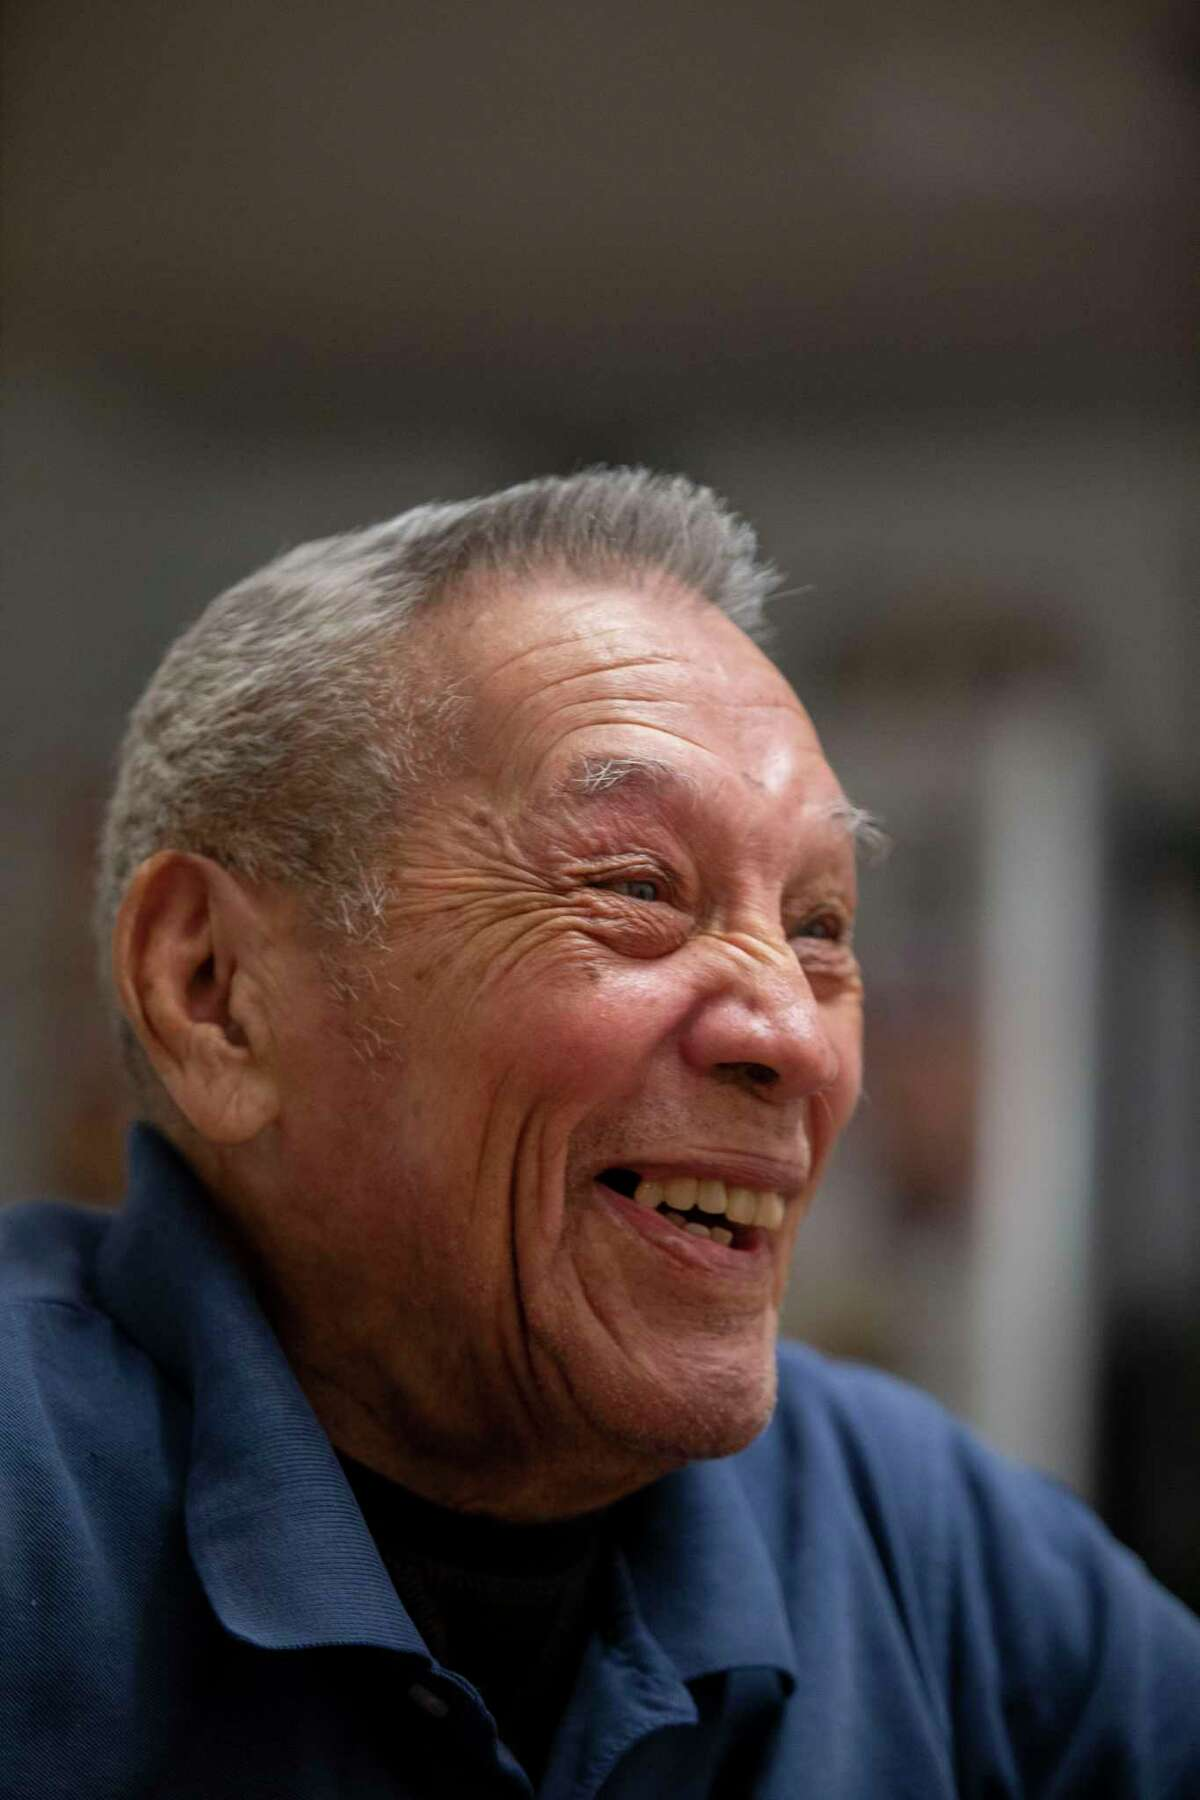 """Willie Doria, 94, one of the last living stars of the Spanish American Baseball League, poses at the home of Joe Sanchez, a former manager of the league, in San Antonio, Texas on Nov. 26, 2019. Doria's favorite part of the game is hitting home runs and friends say he hit his best home run when he was 65. """"The only thing I can tell you is that I have good eyesight,"""" says Doria as he explains his skill. """"Each pitcher has a style and I used to watch their fingers and how they held the ball and I knew exactly what was coming."""""""